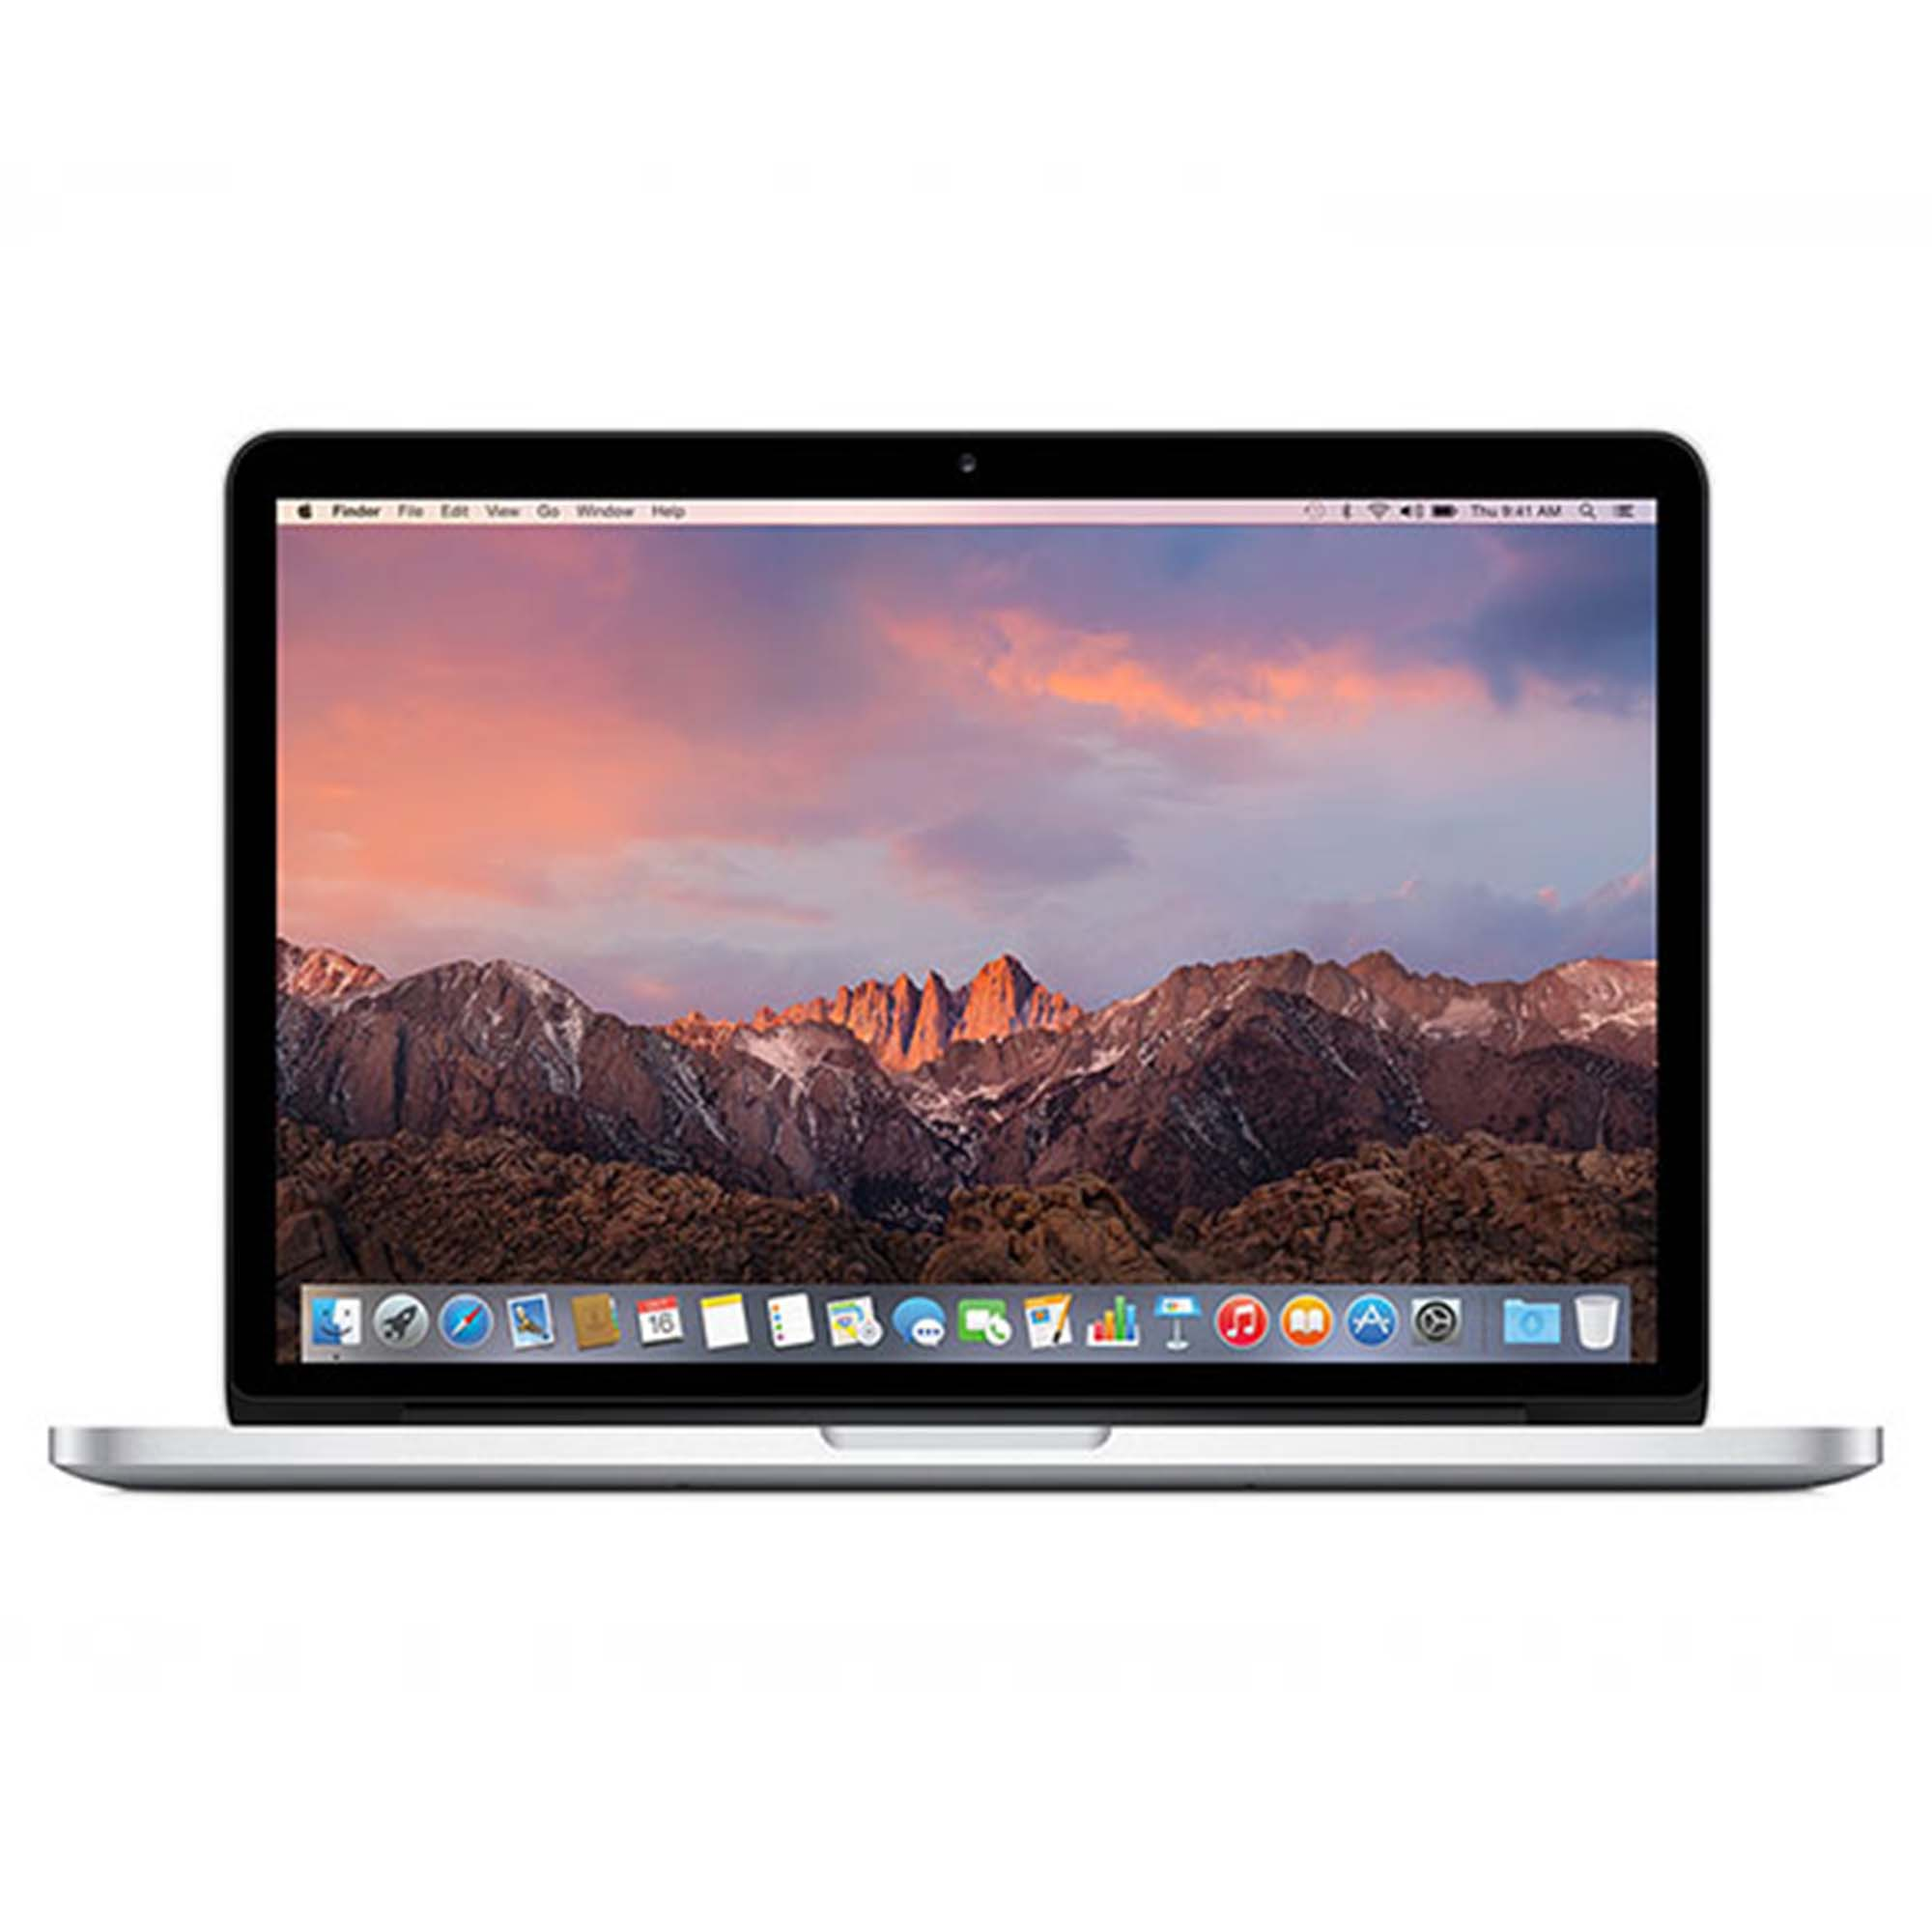 "Apple MacBook Pro 15"" Core i7 2.5GHz Retina (MGXC2LL/A), 16GB Memory, 512GB Solid State Drive - Refurbished"